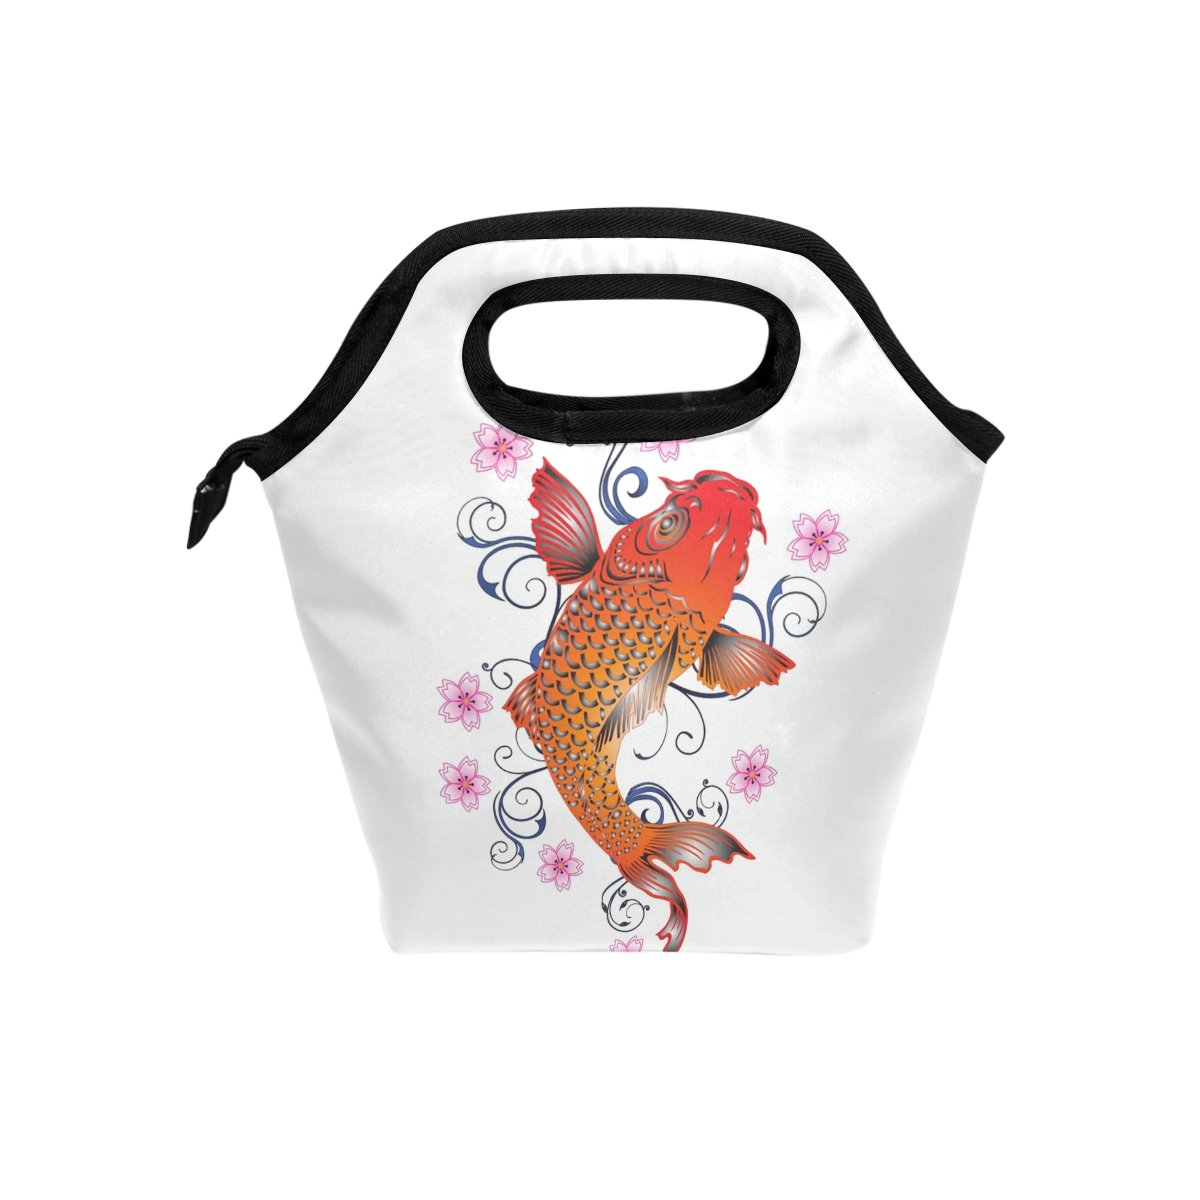 9c2bcbb77b23 Amazon.com - HEOEH Red Koi Painting Lunch Bag Cooler Tote Bag ...